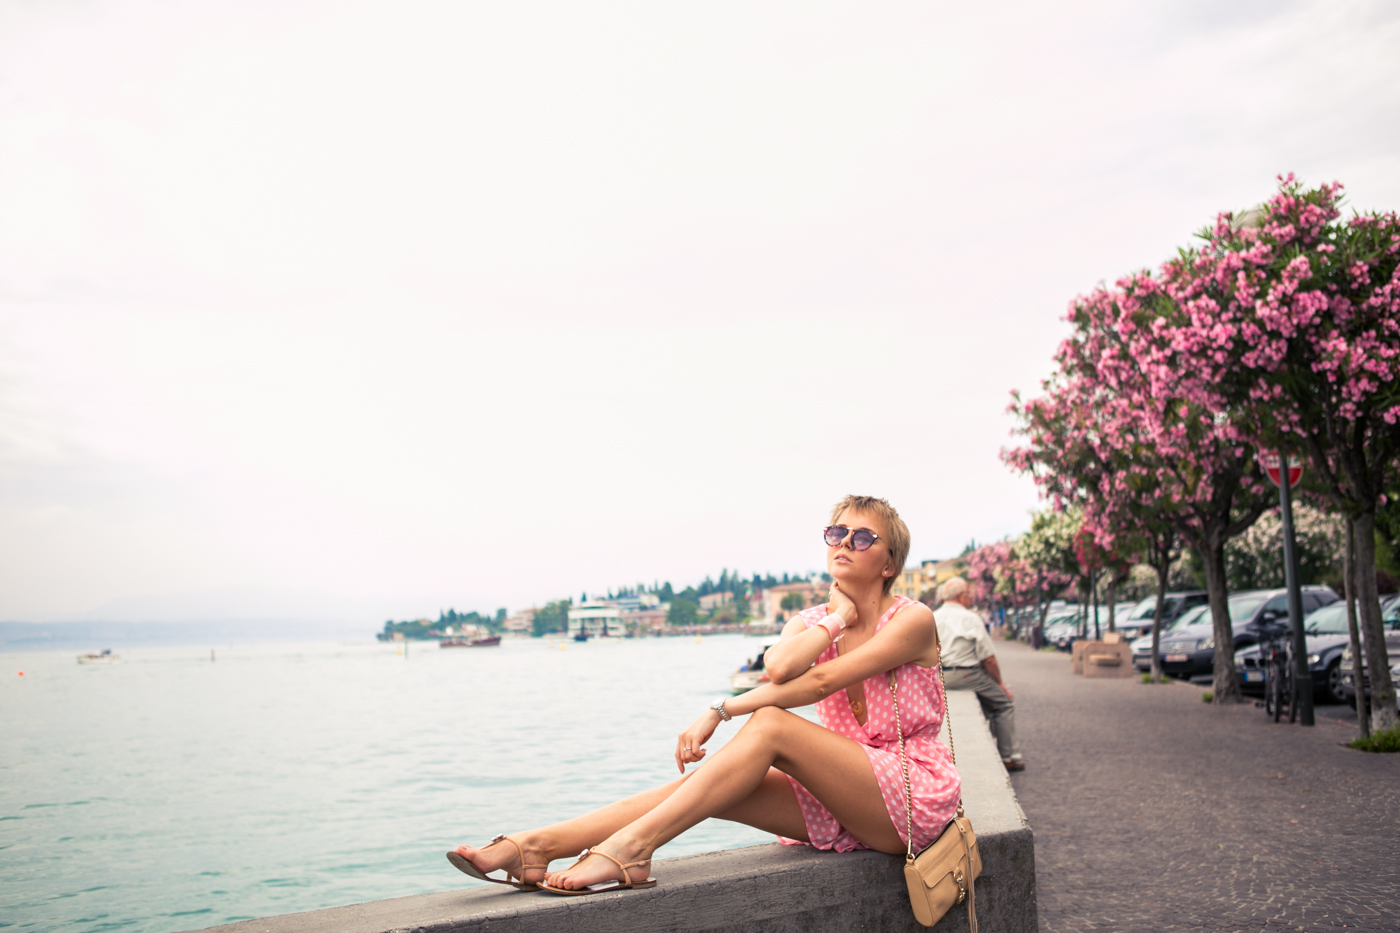 thecablook darya kamalova fashion blog street style sirmione italy verona jumpsuit rompers polka dots pixie cut short hair zanotti sandals rebecca minkoff bag vj style sunnies sunglasses outfit-14